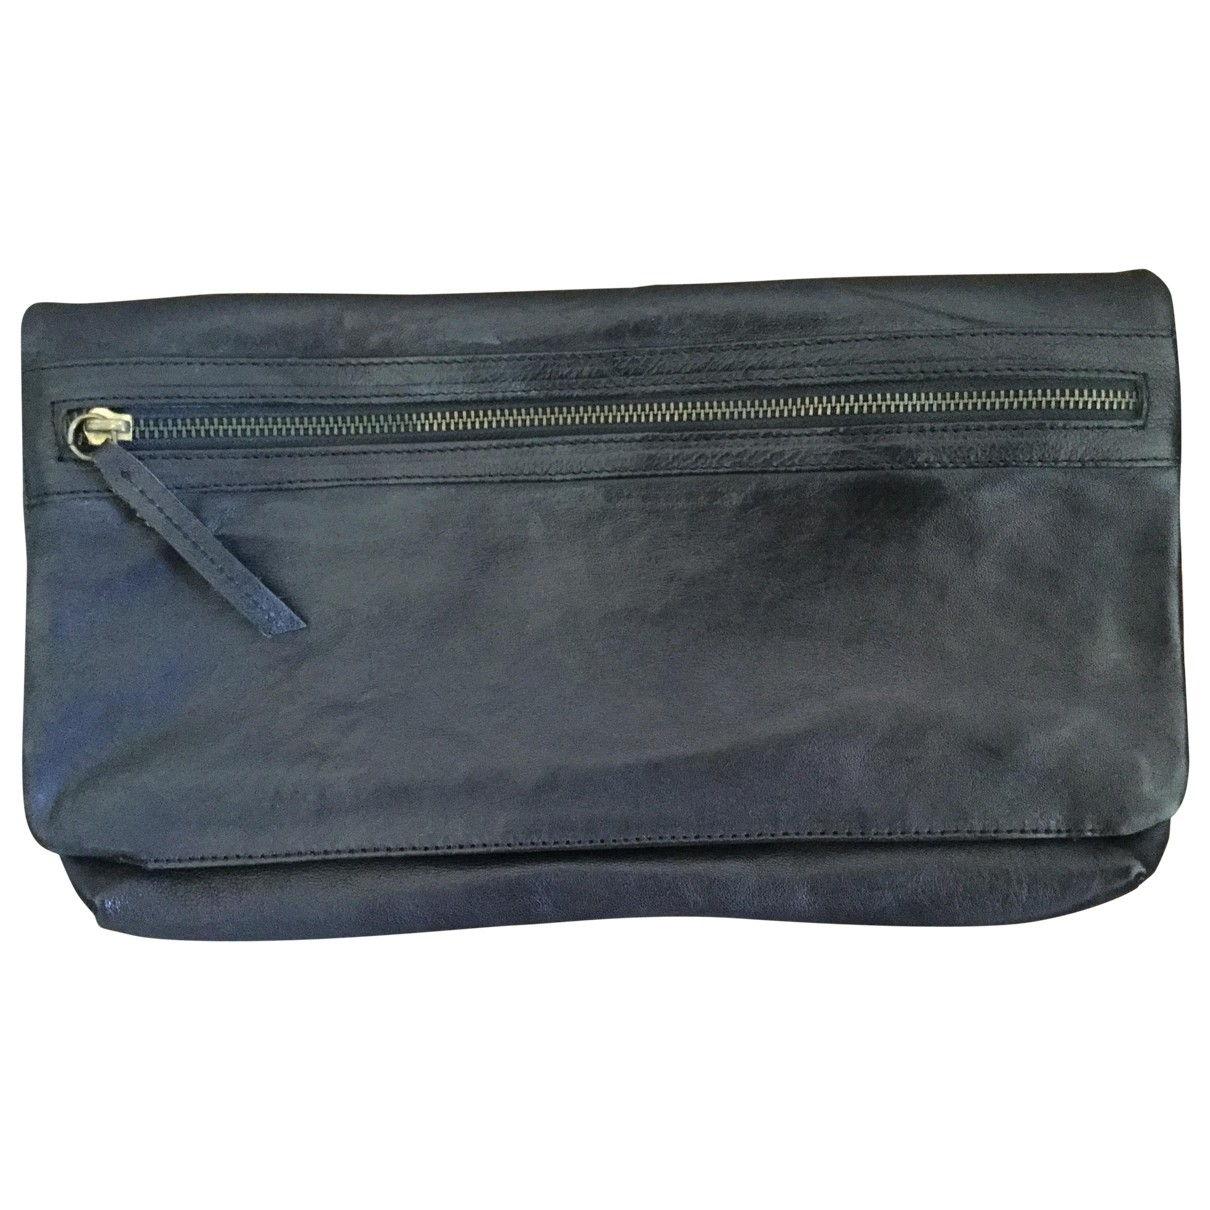 Cos \N Black Leather Clutch bag for Women \N